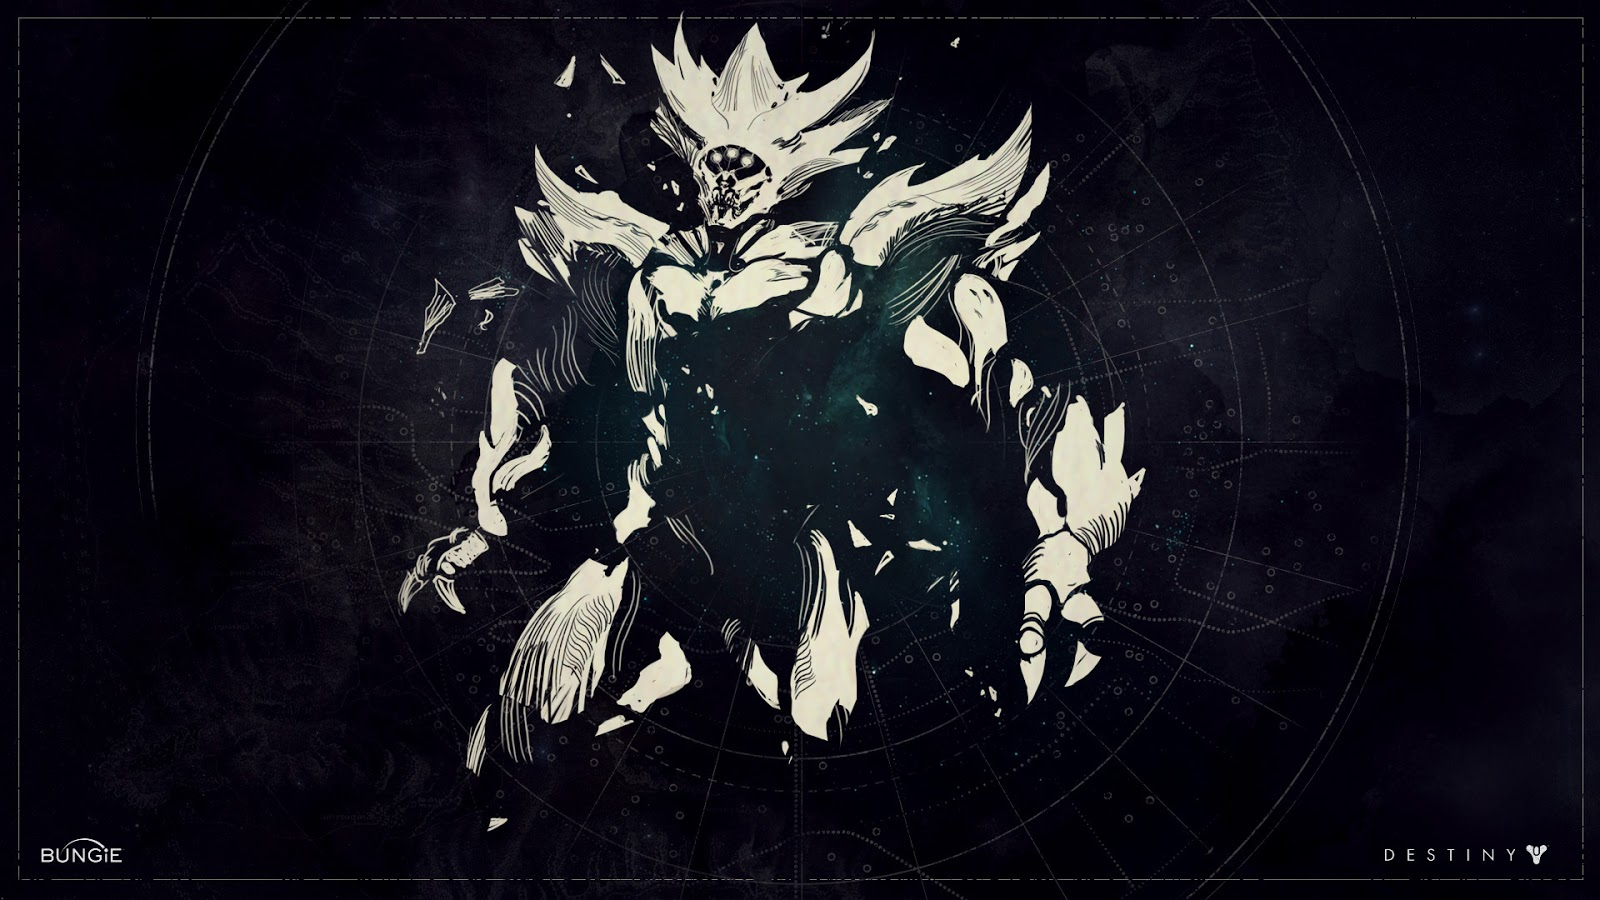 Destiny: The Taken King Concepts and Illustrations by Ryan DeMita